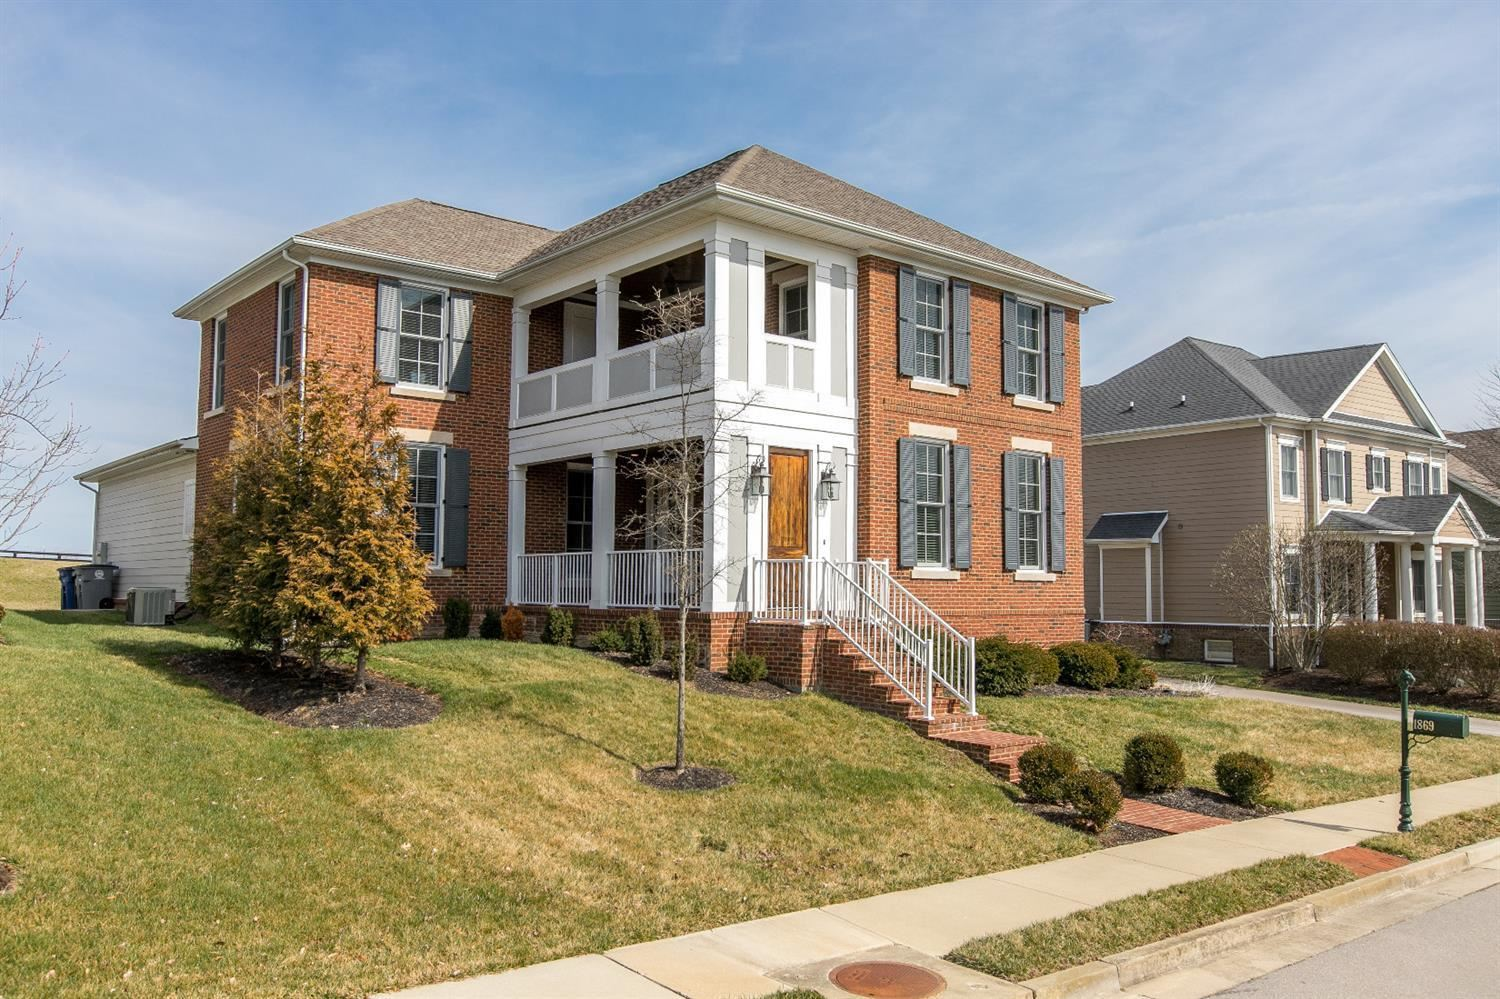 1869 Goodpaster Way, Lexington, KY 40505 - #: 20012884